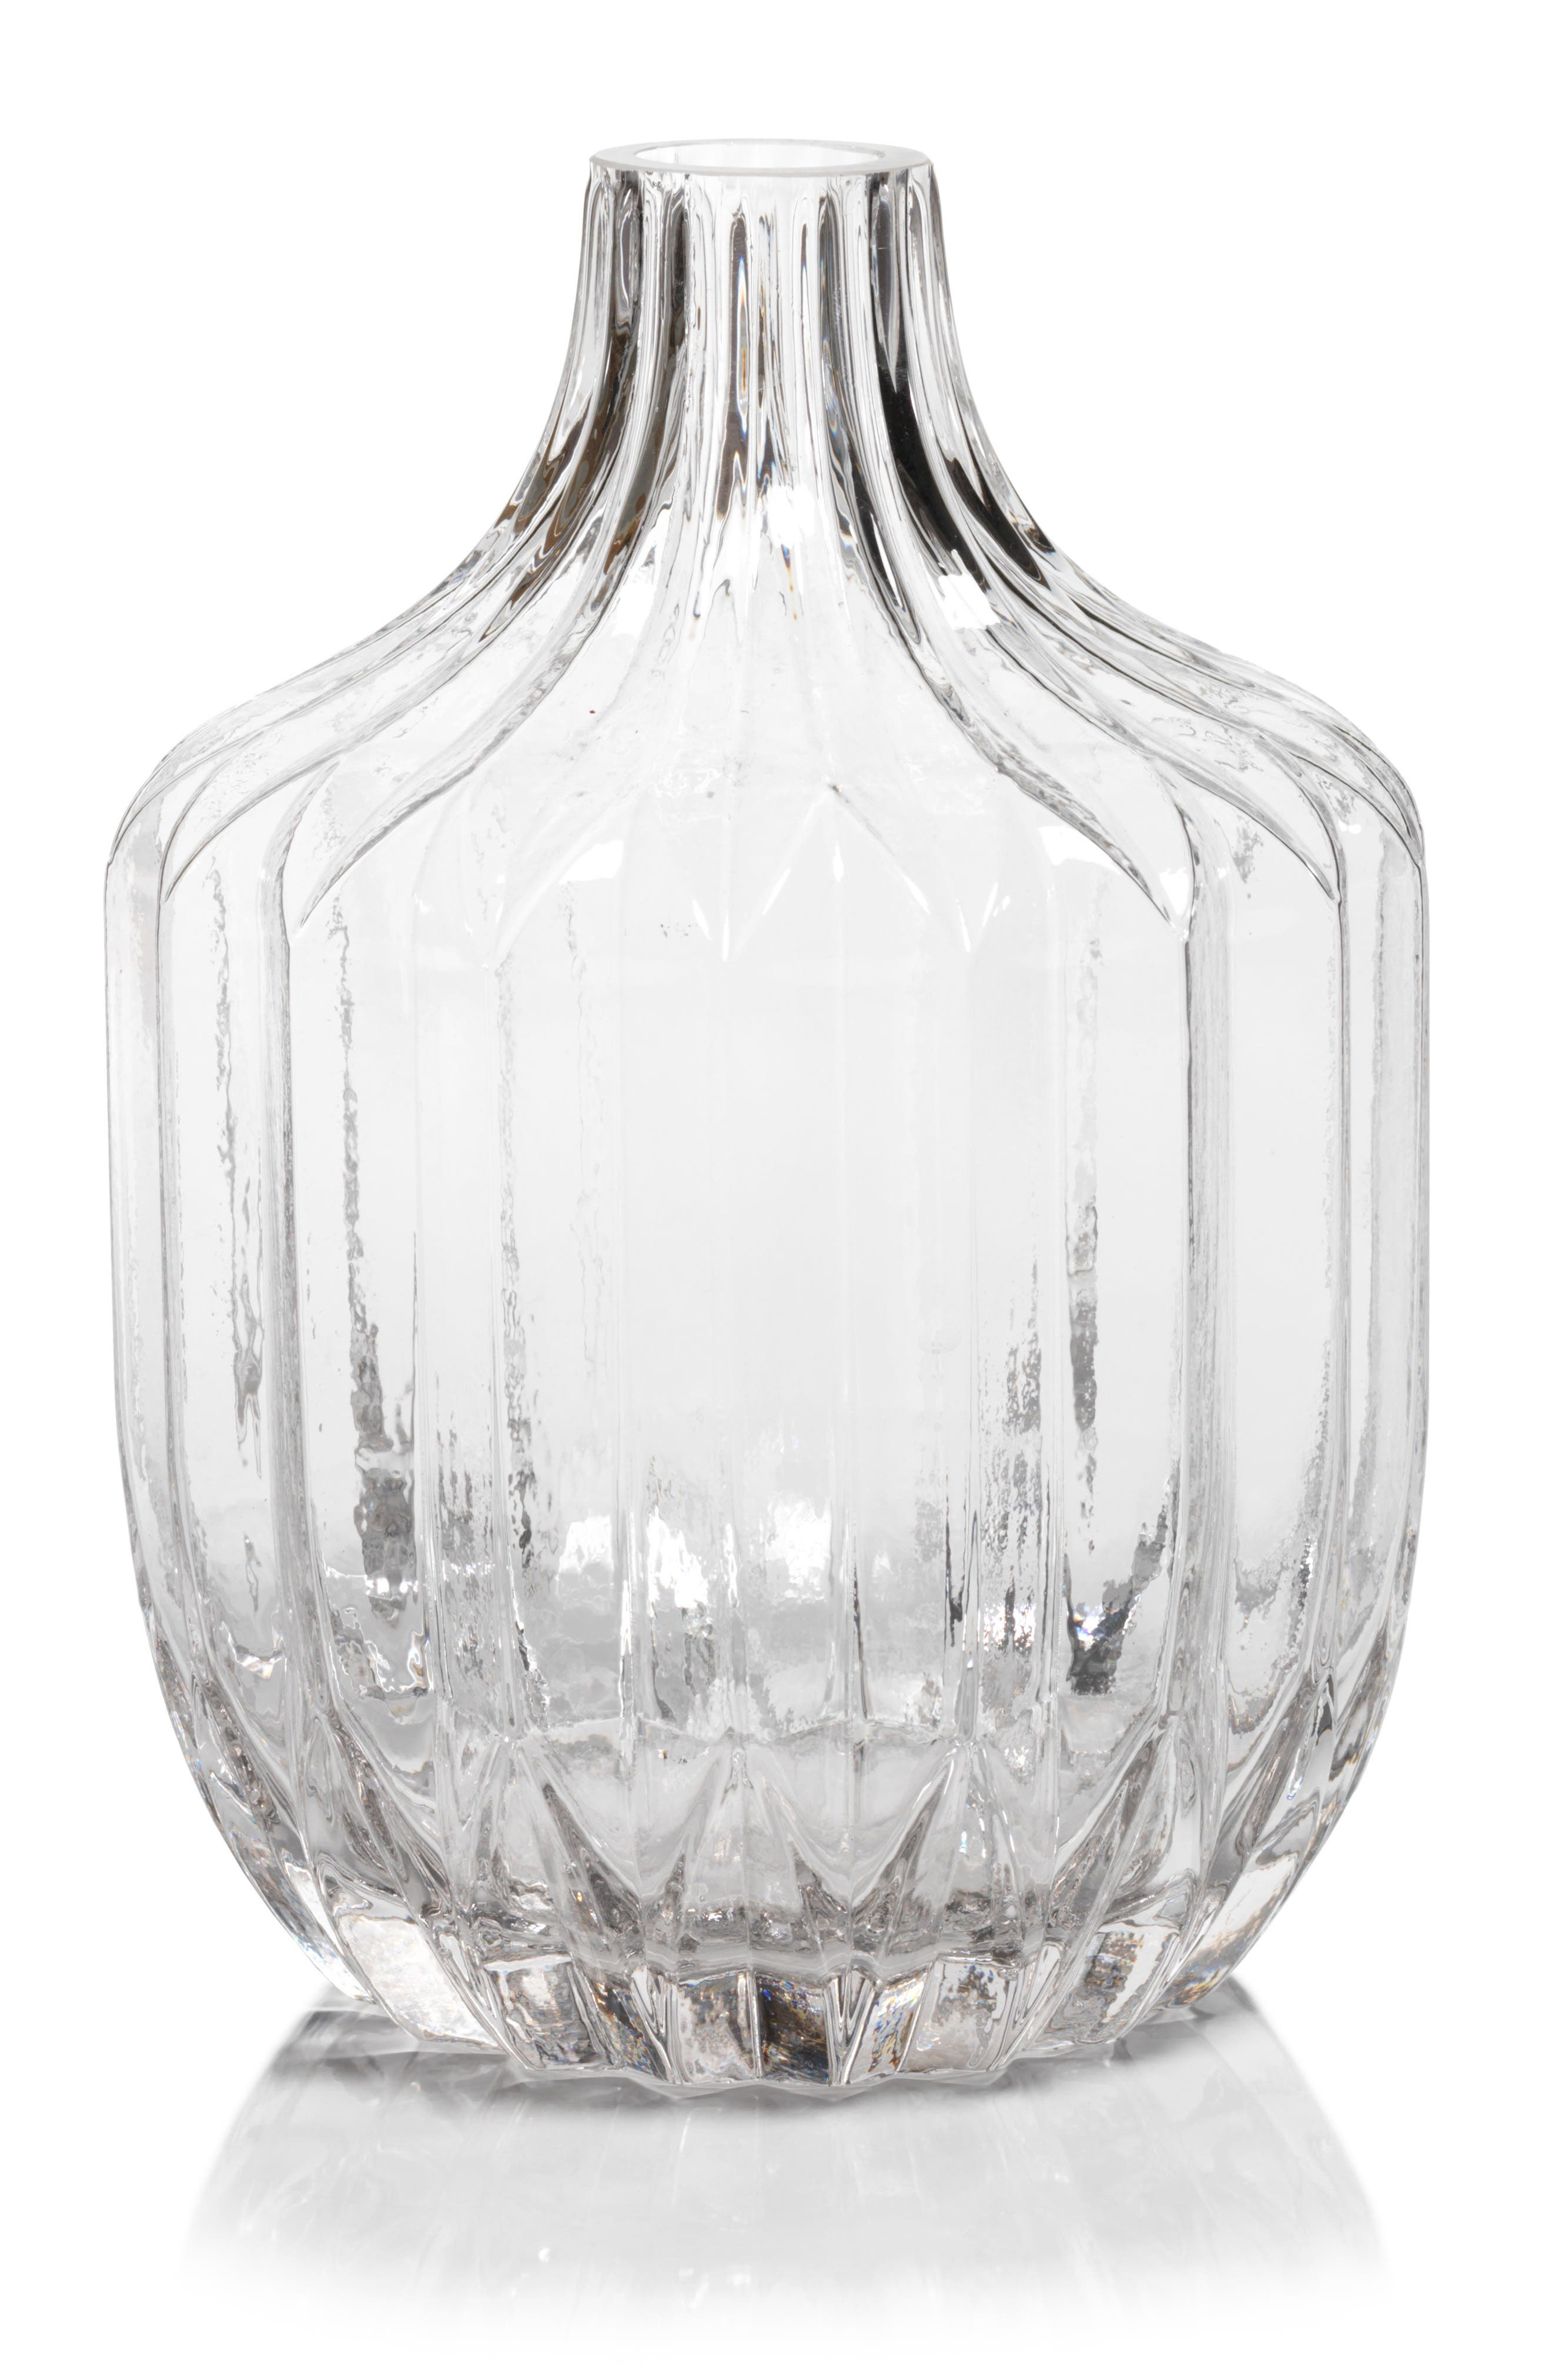 Zodax Astrud Ribbed Glass Vase